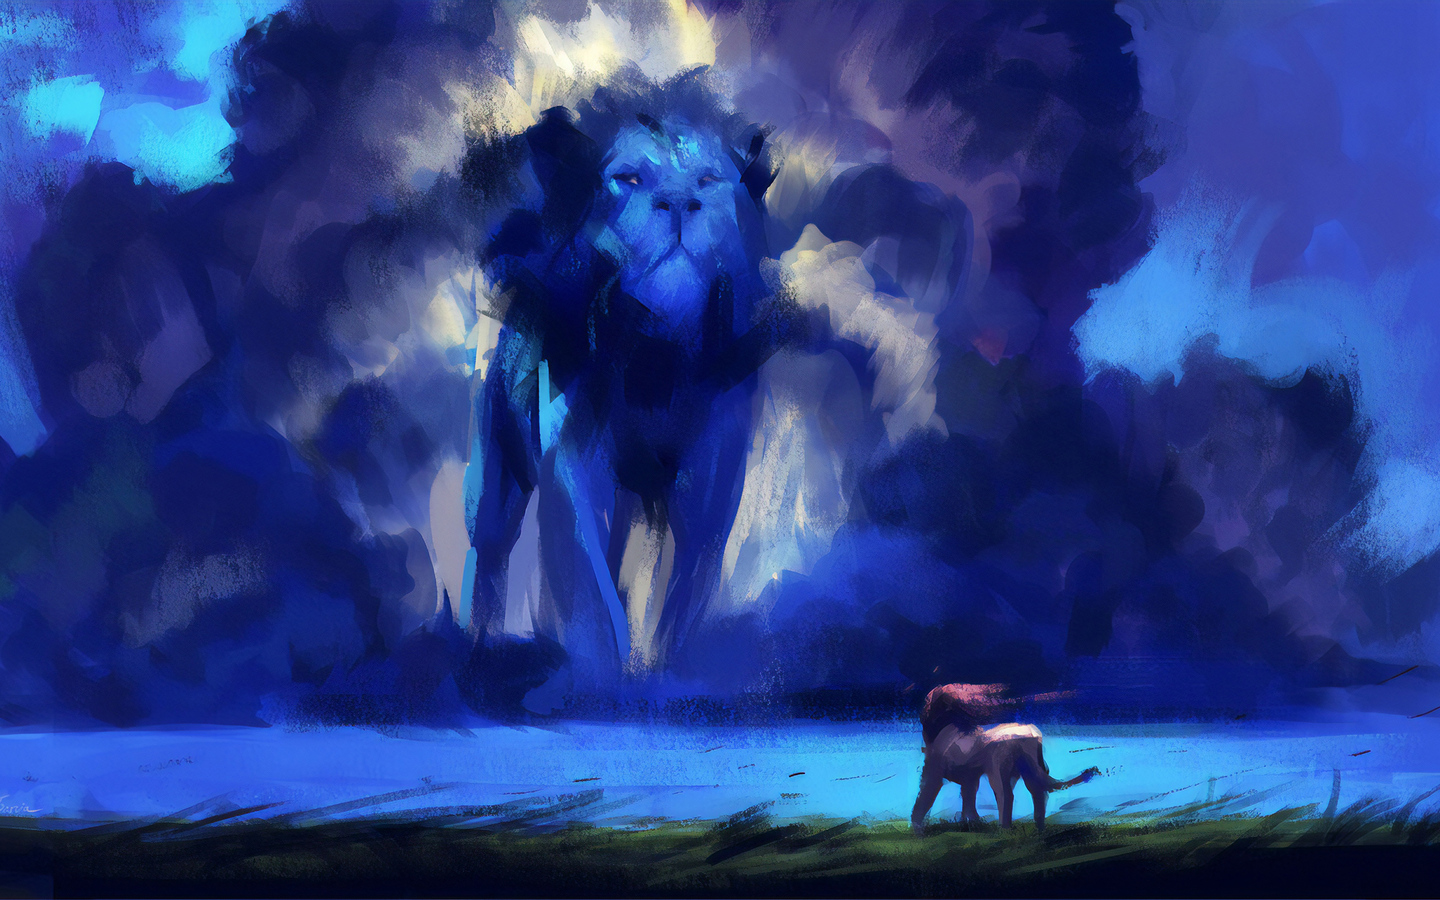 1440x900 The Lion King Movie Sketch Art 1440x900 Resolution Hd 4k Wallpapers Images Backgrounds Photos And Pictures